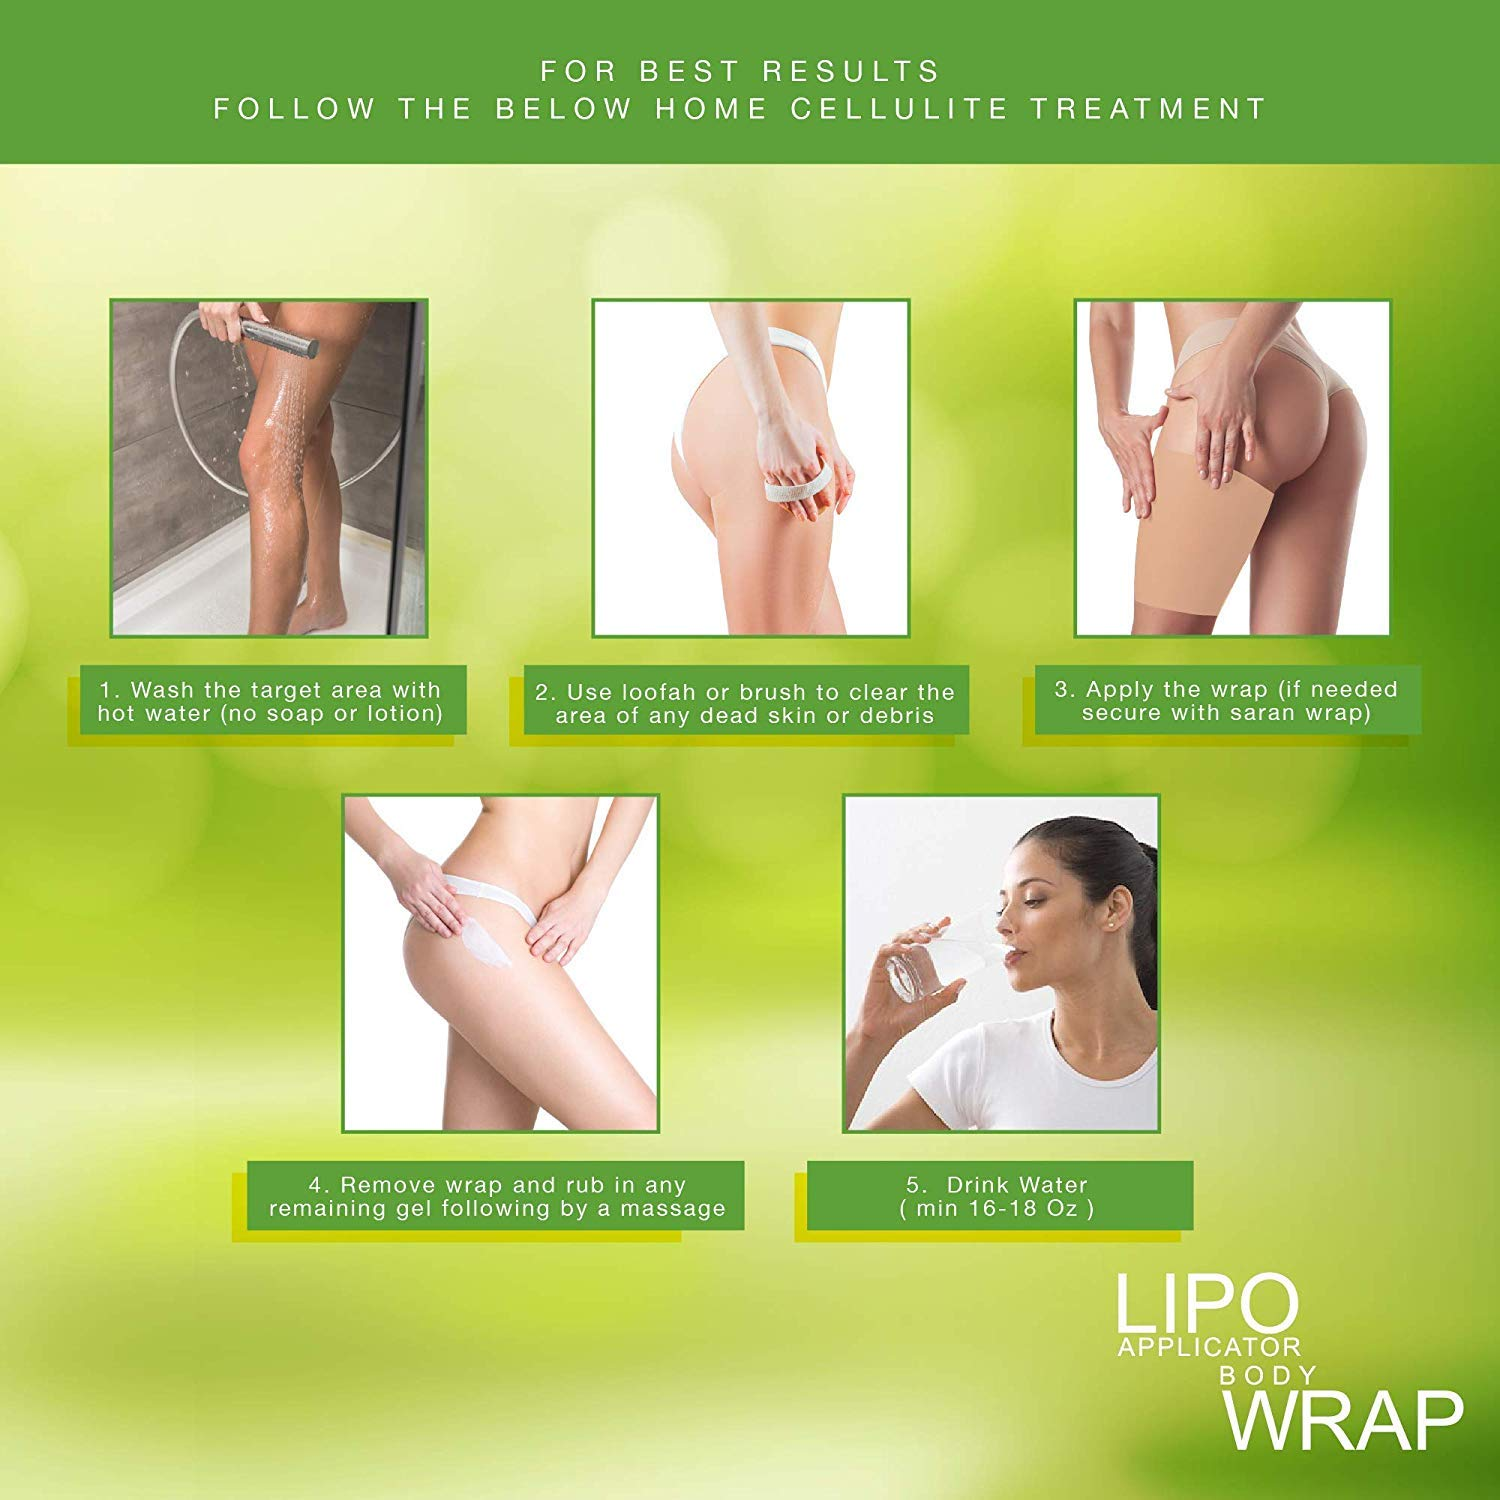 Ultimate Body Applicator Lipo Wrap it Works for for Inch Loss To